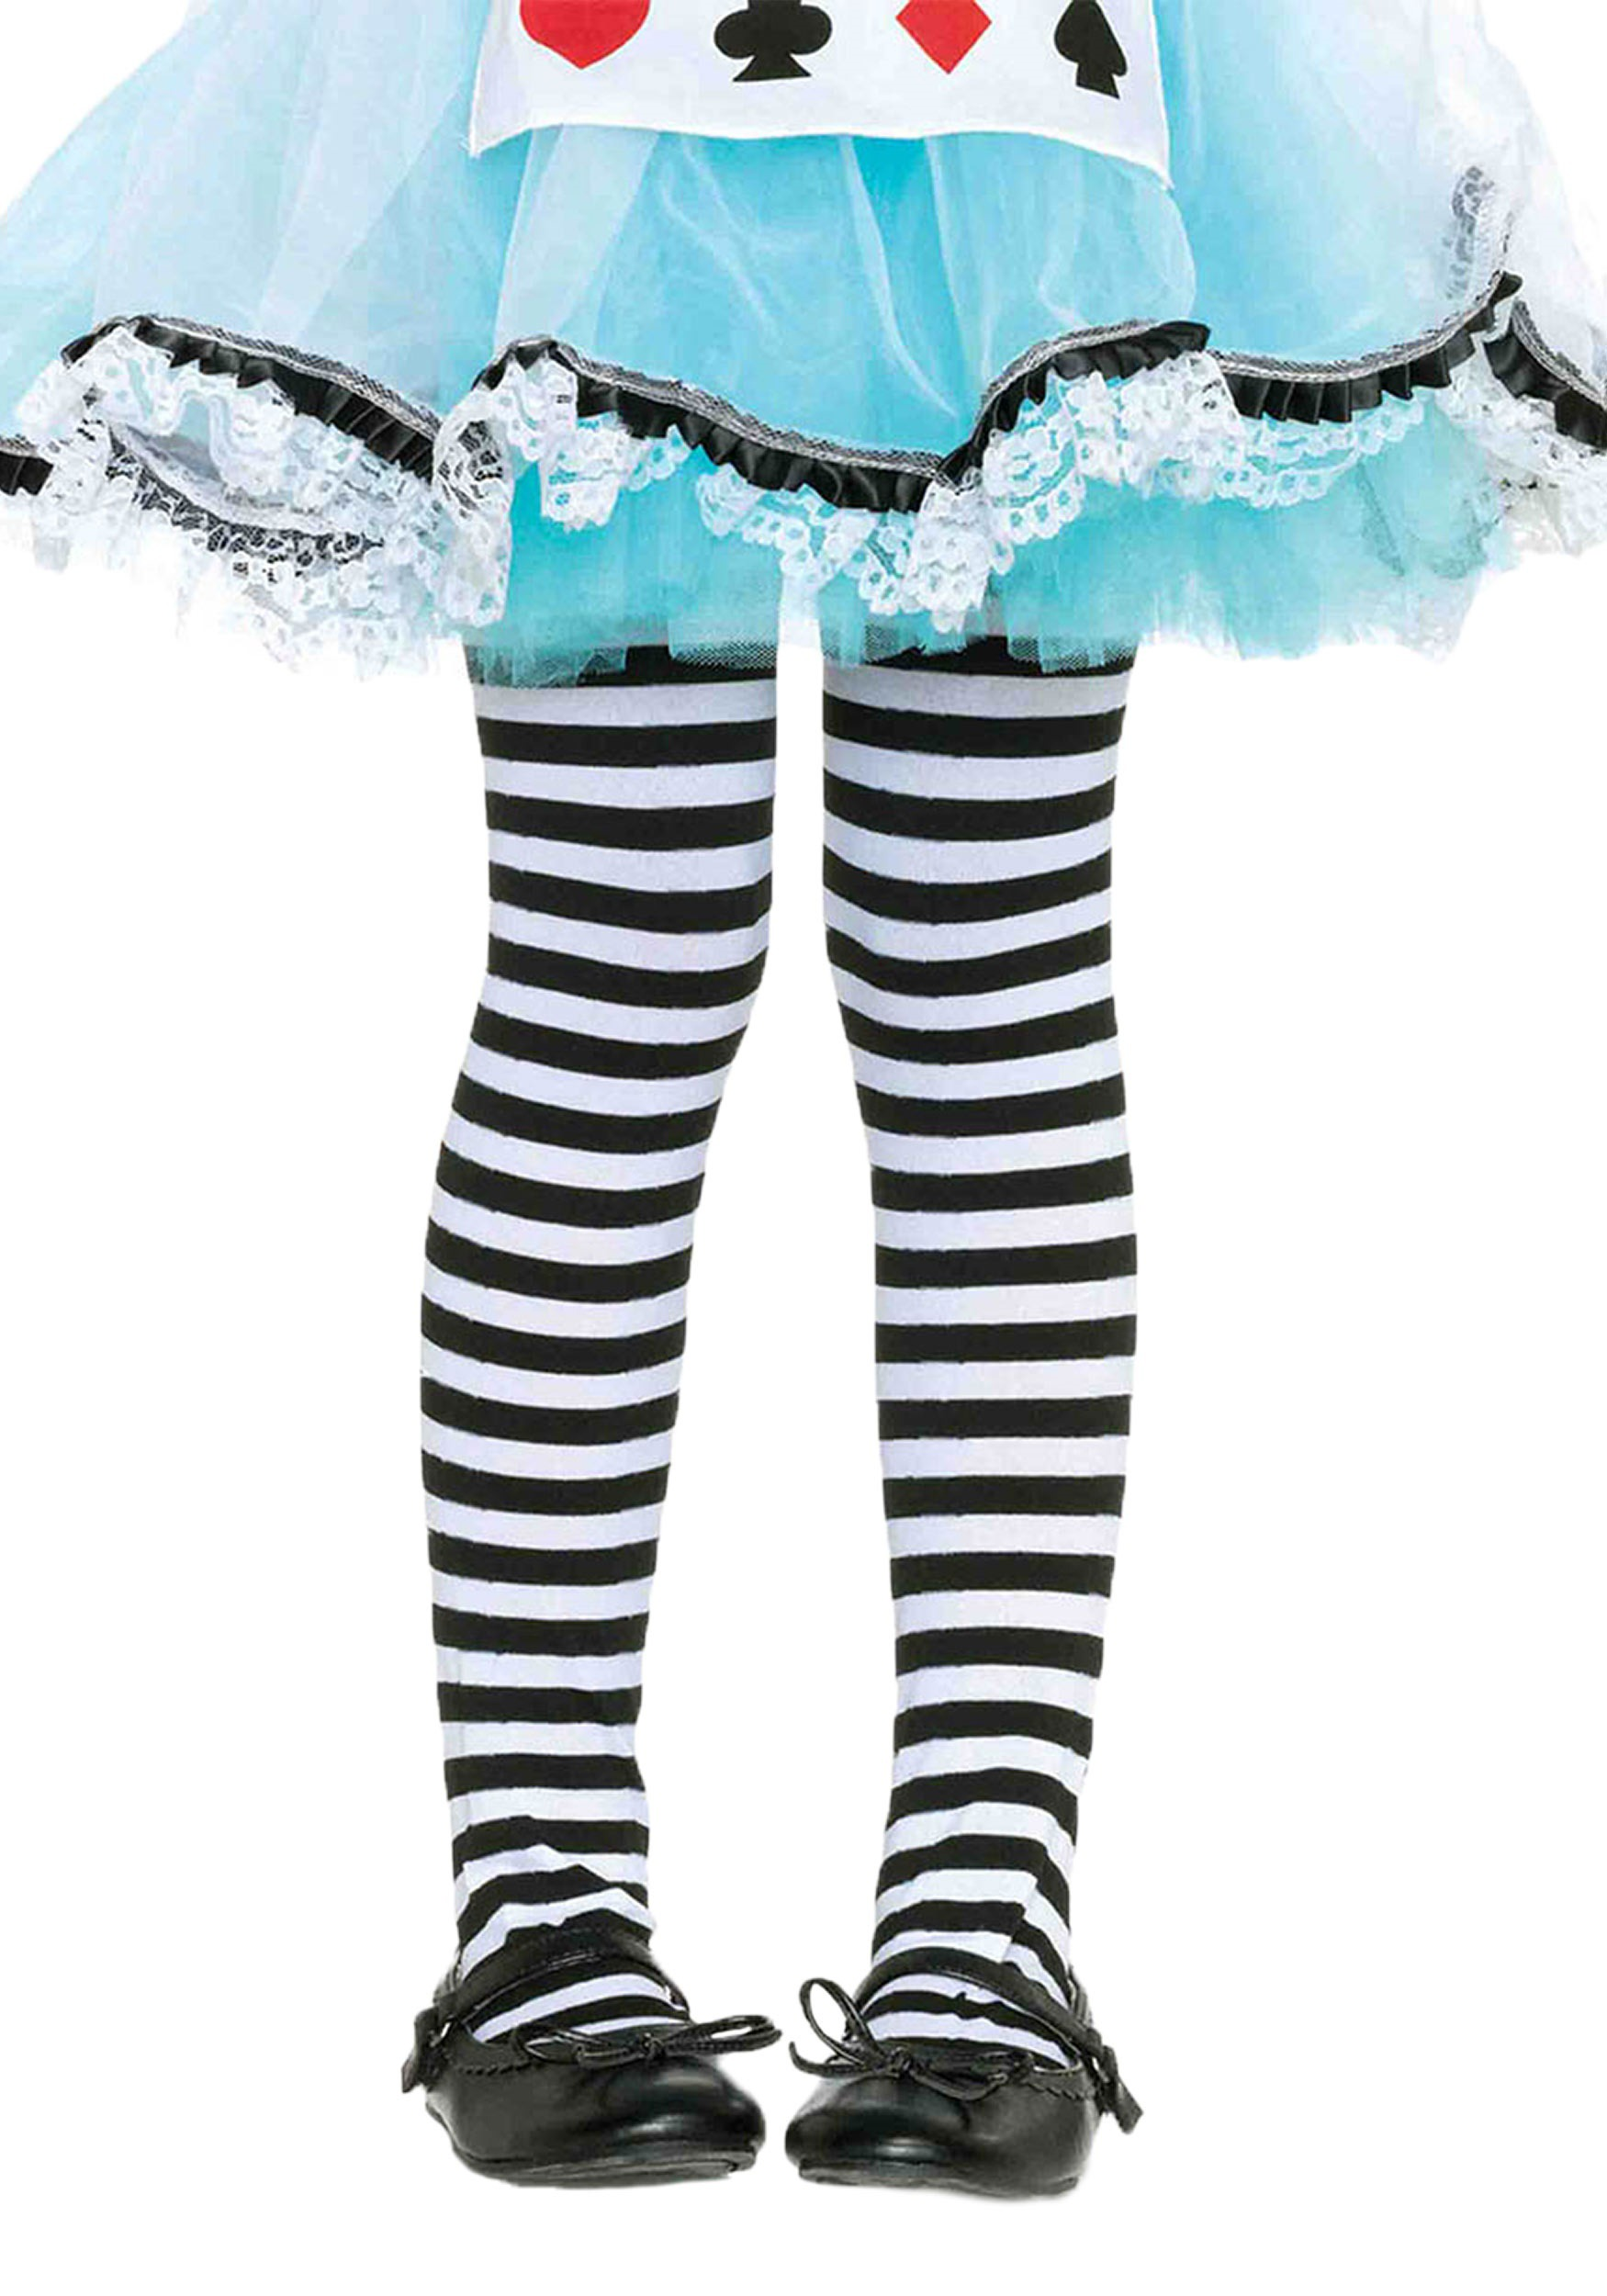 04708368332d8 kids-black-and-white-striped-tights.jpg